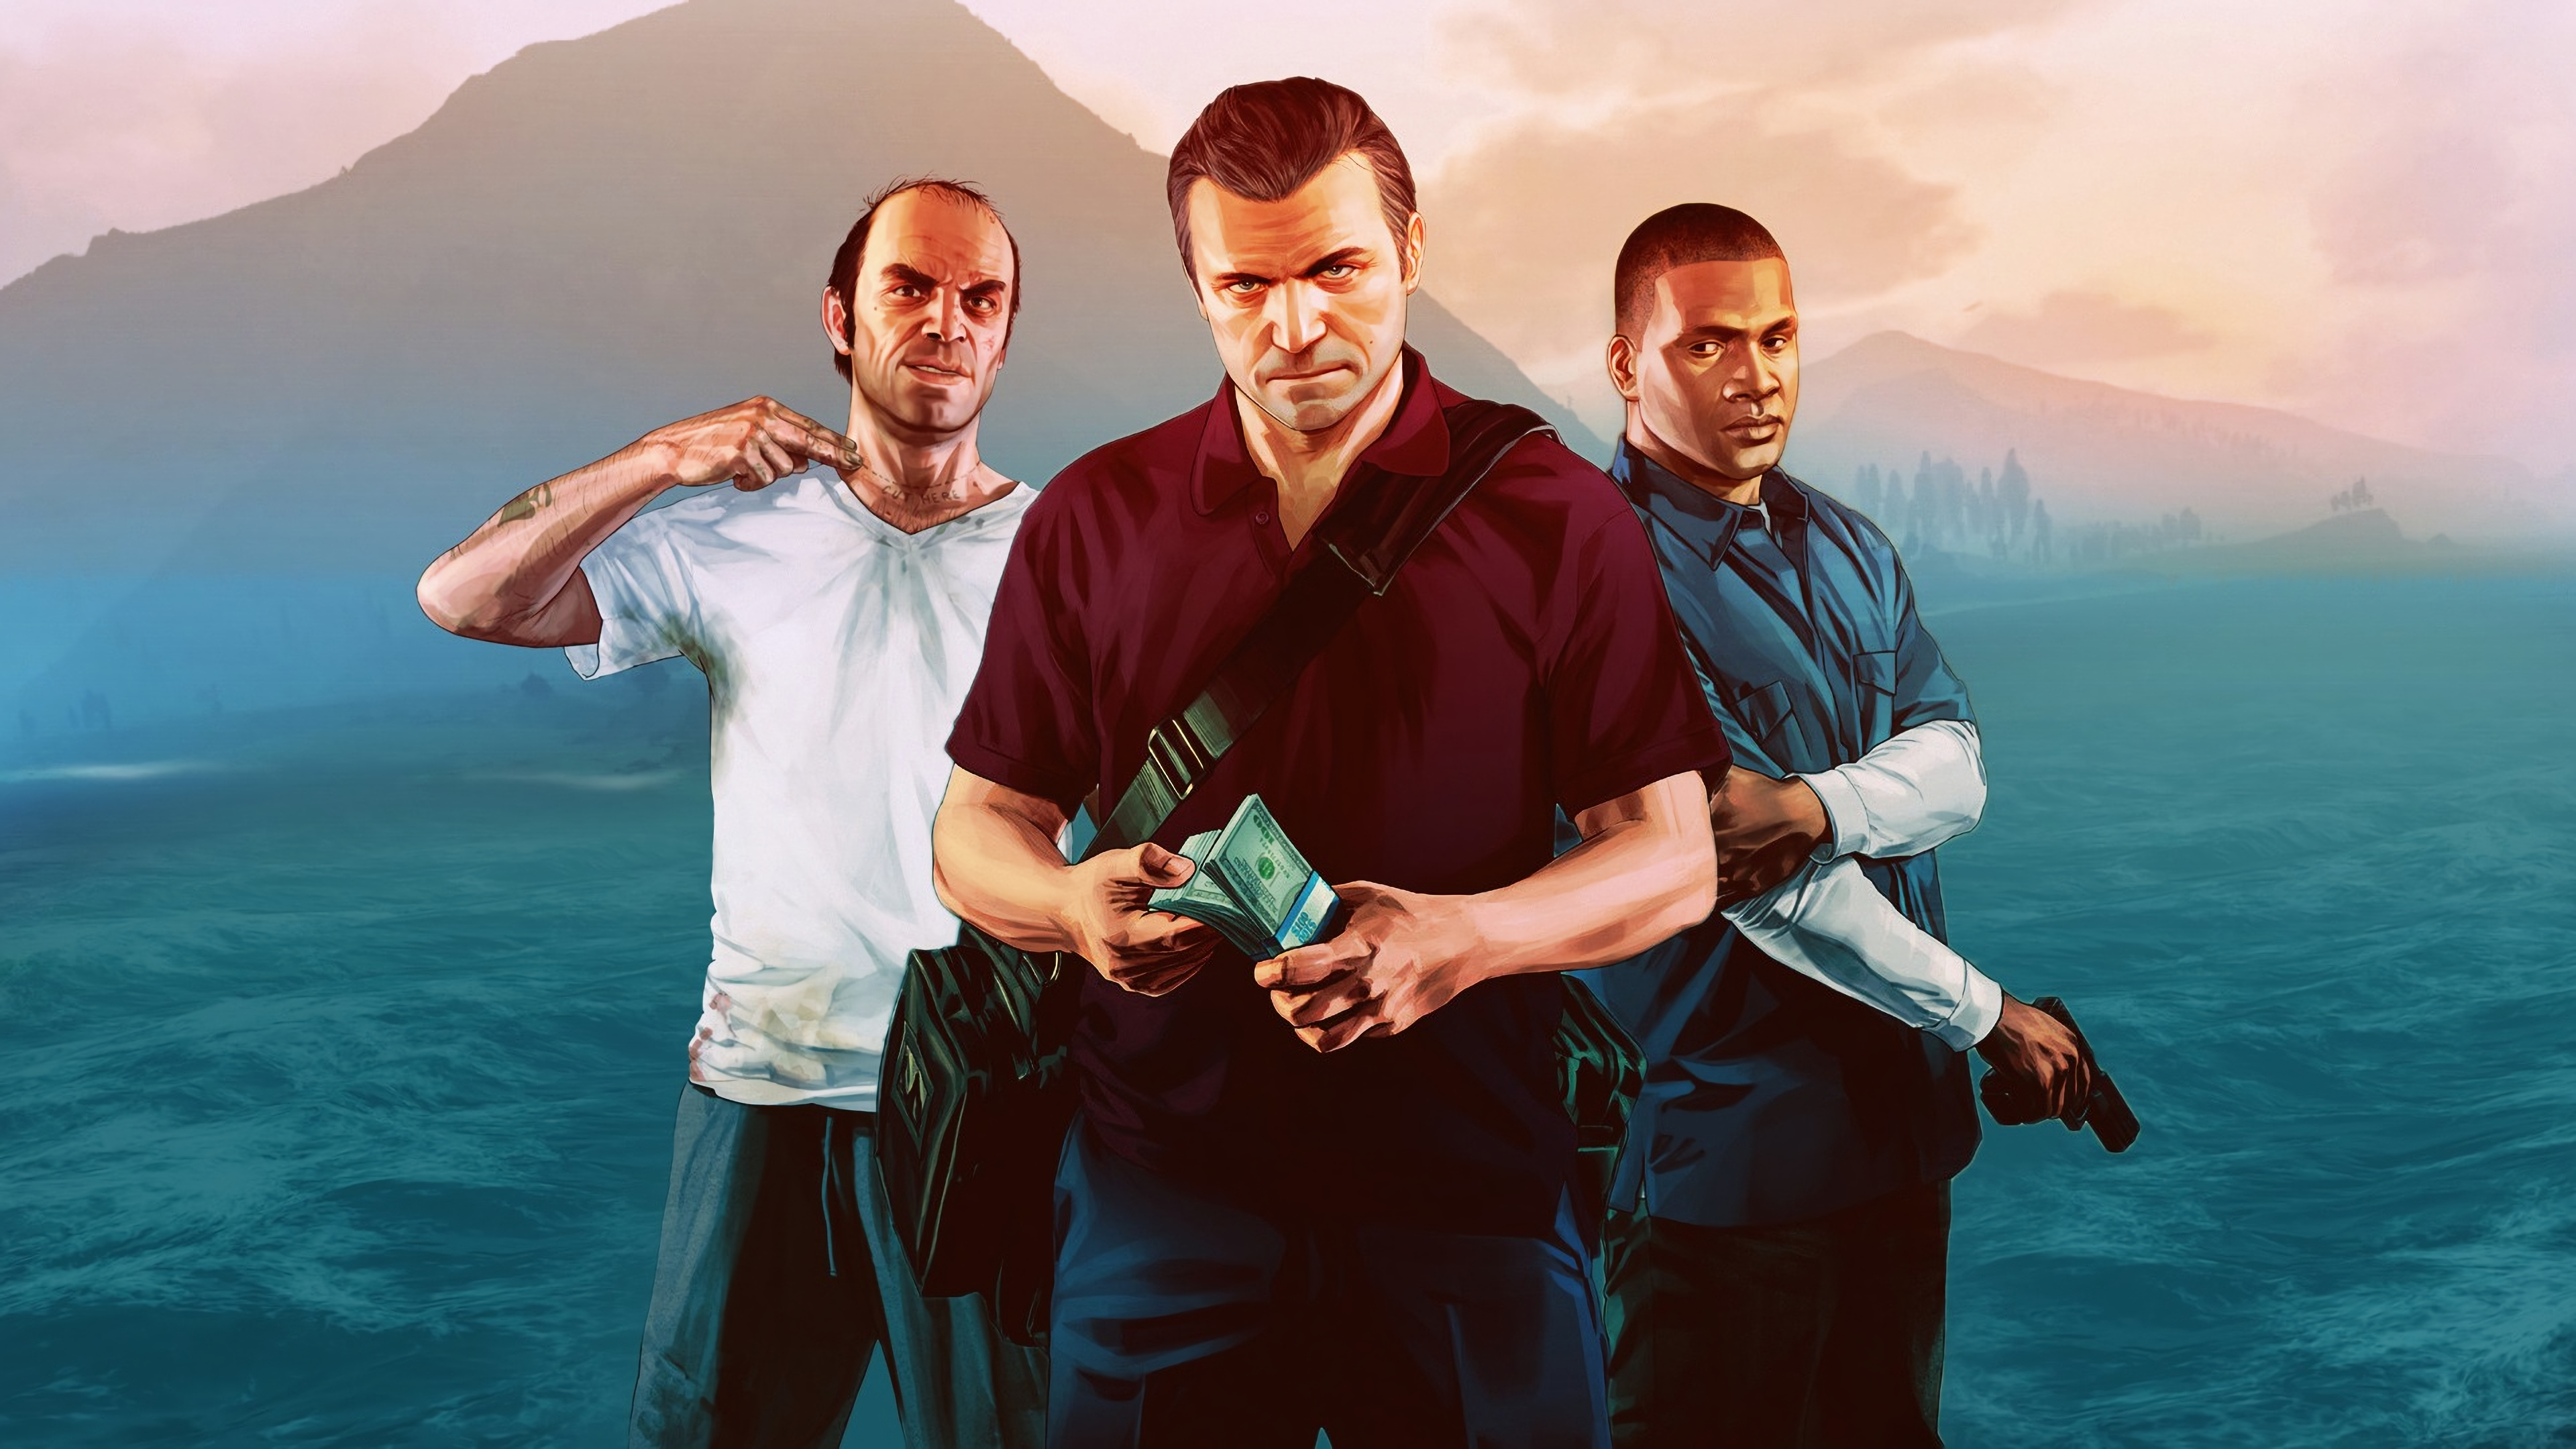 Wallpaper 4k Gta V Trevor Franklin Michael 4k Wallpapers